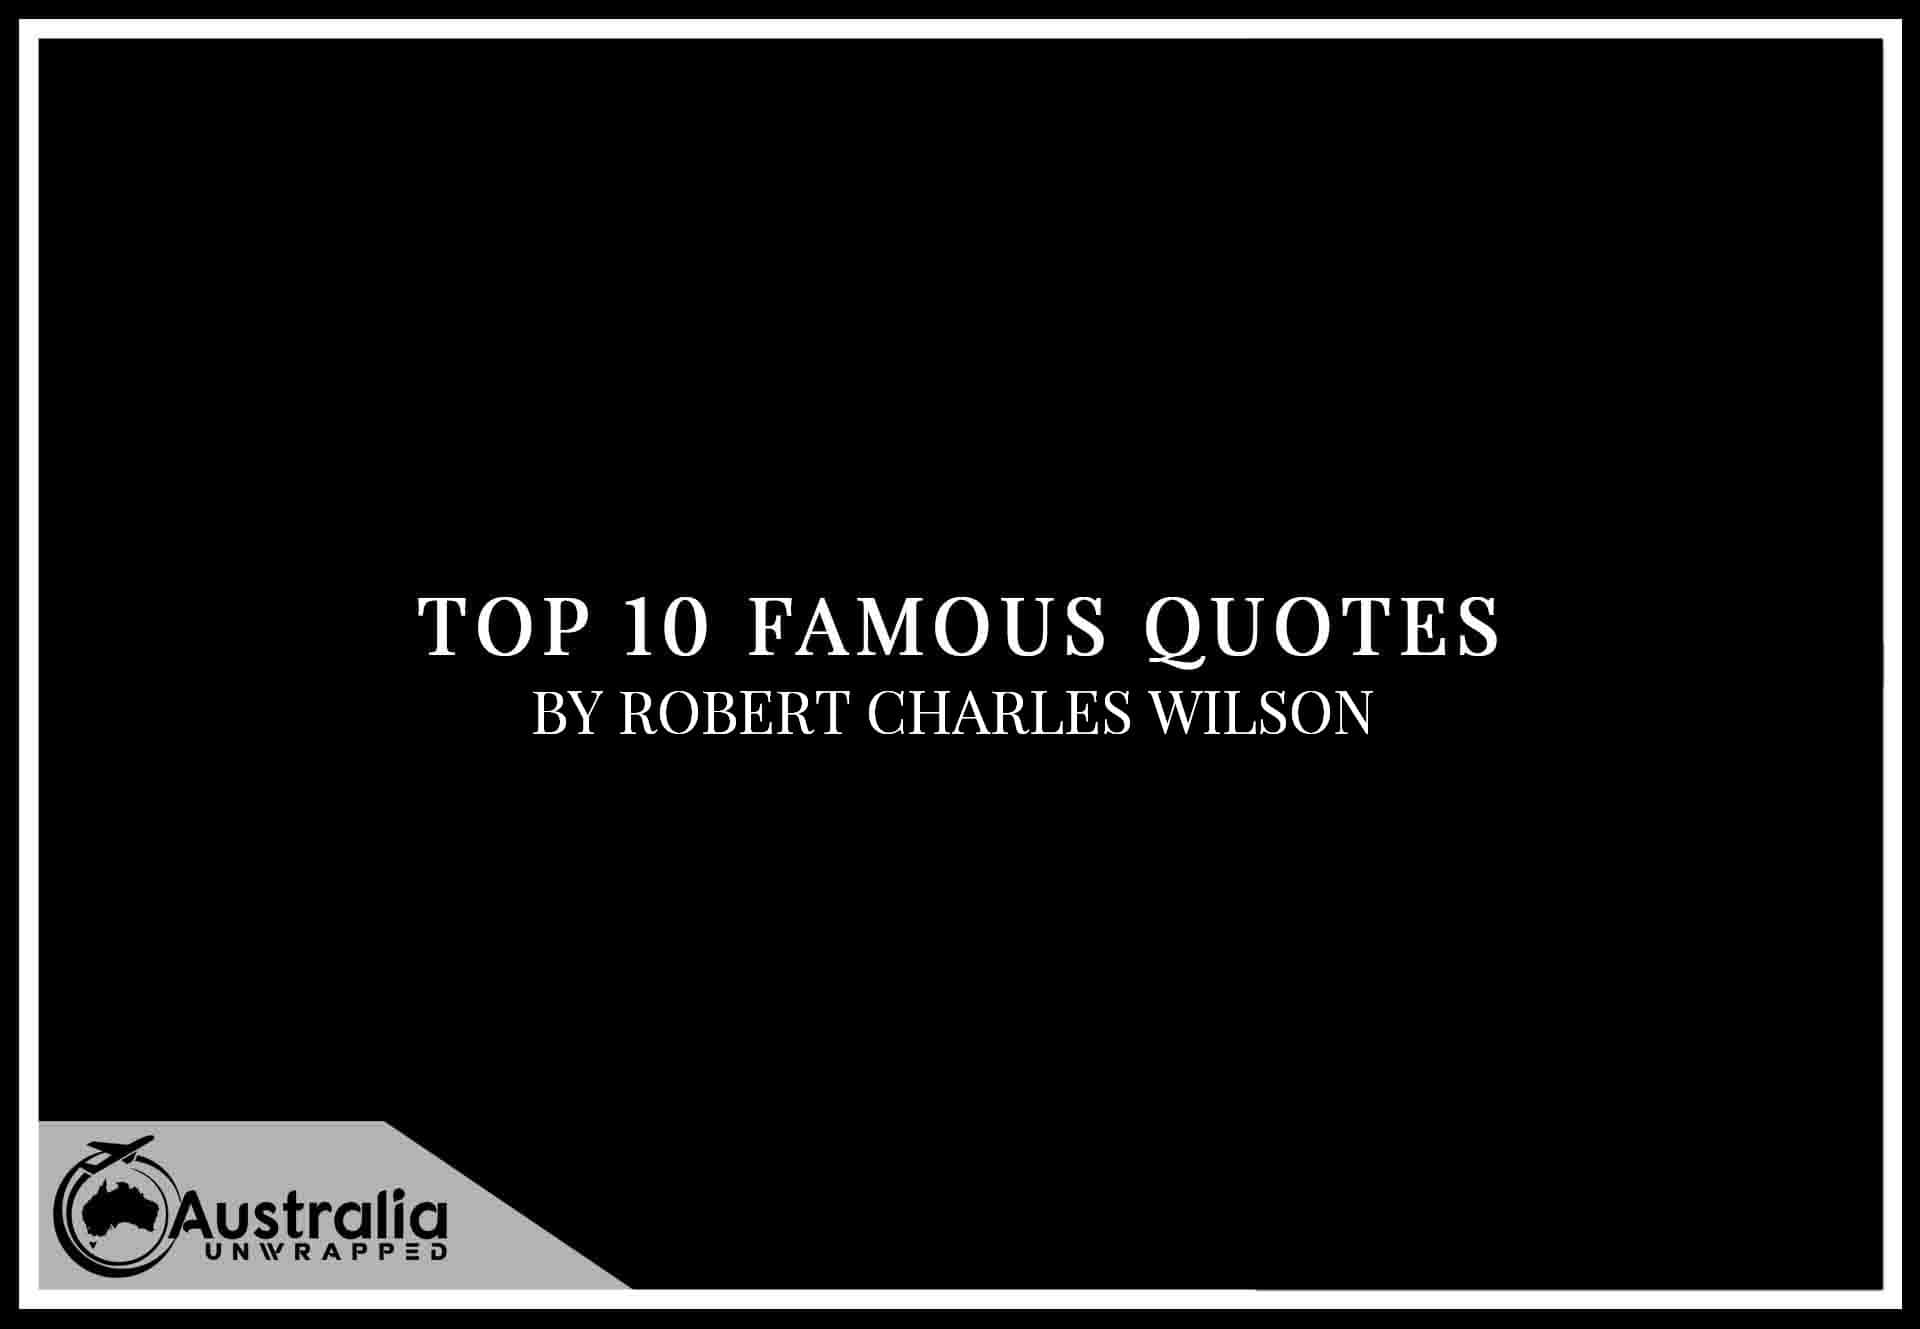 Top 10 Famous Quotes by Author Robert Charles Wilson